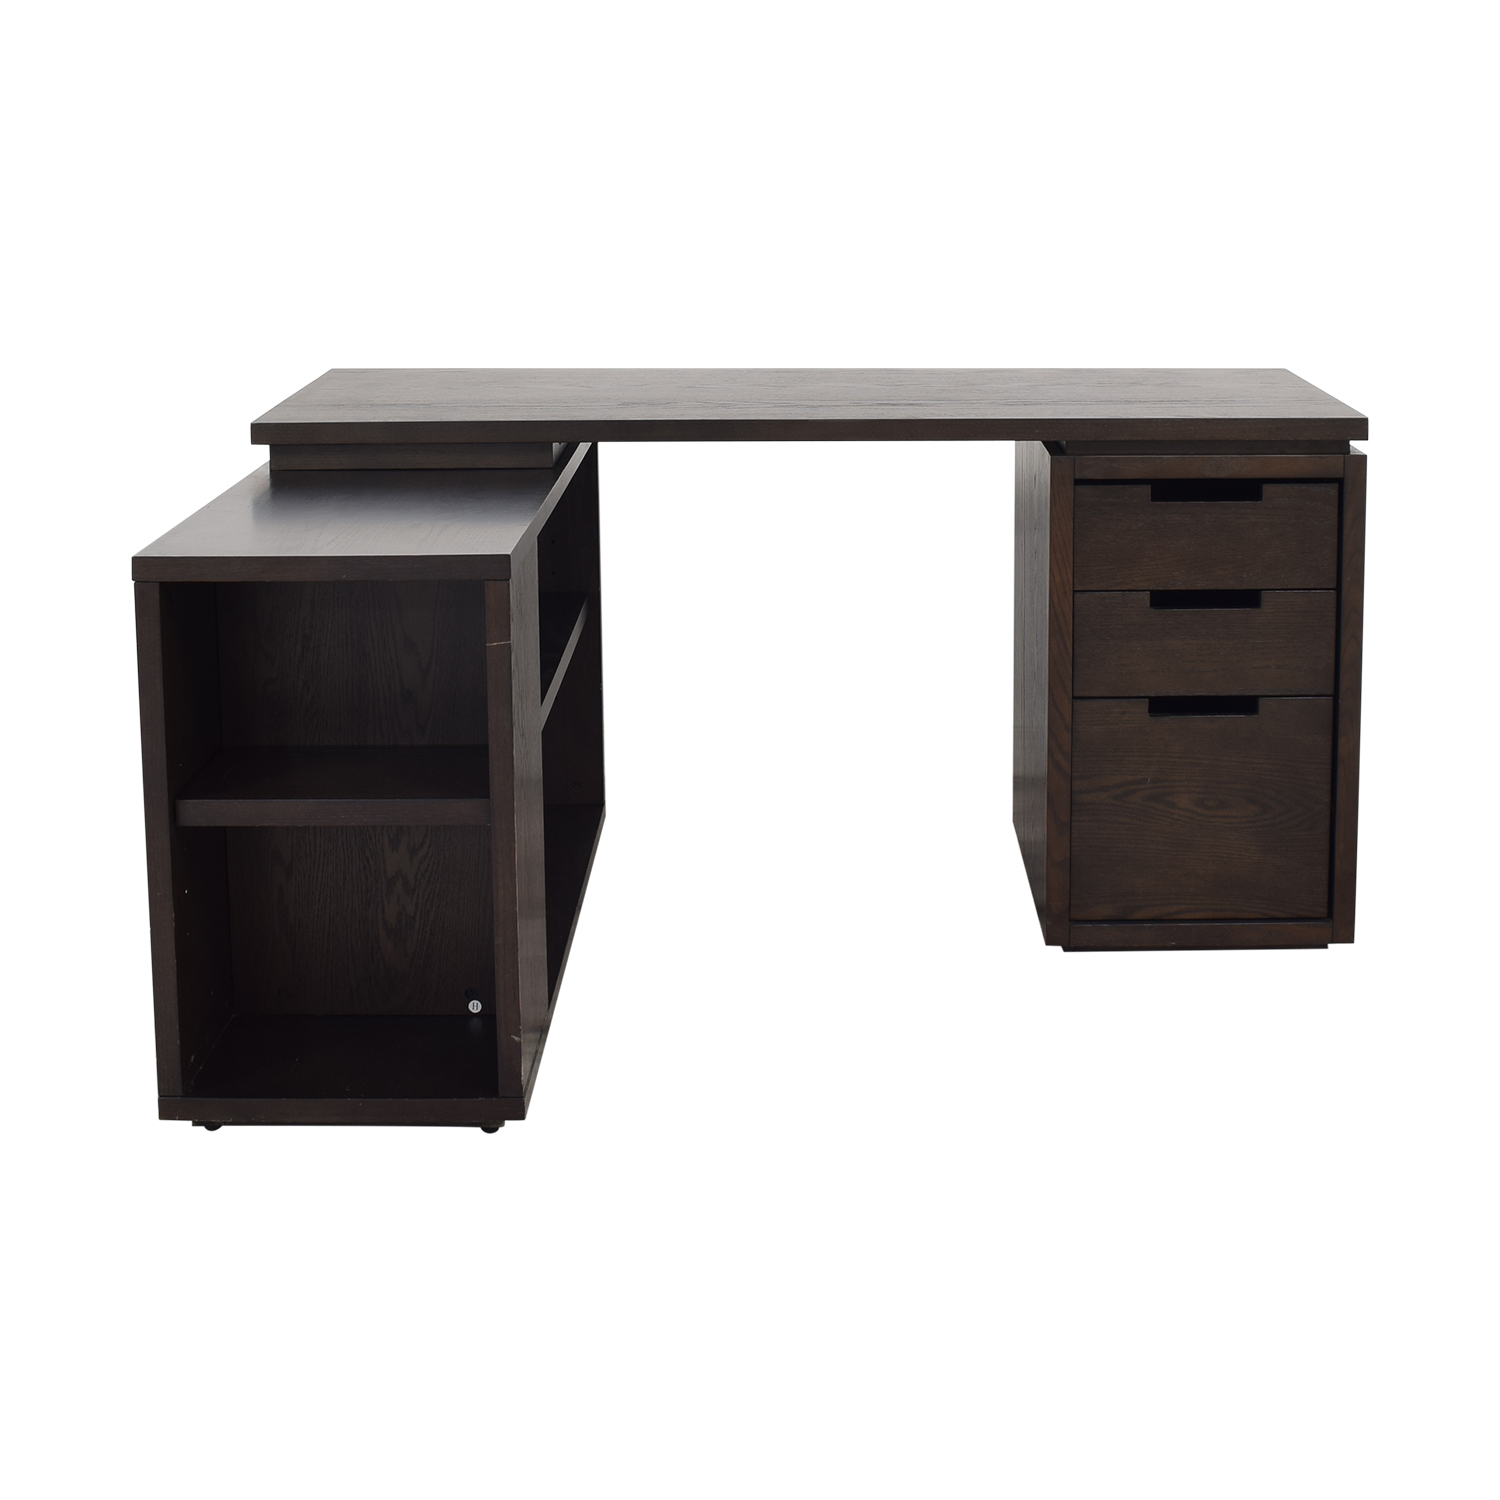 West Elm Modular Office L-shaped Desk and Bookcase sale